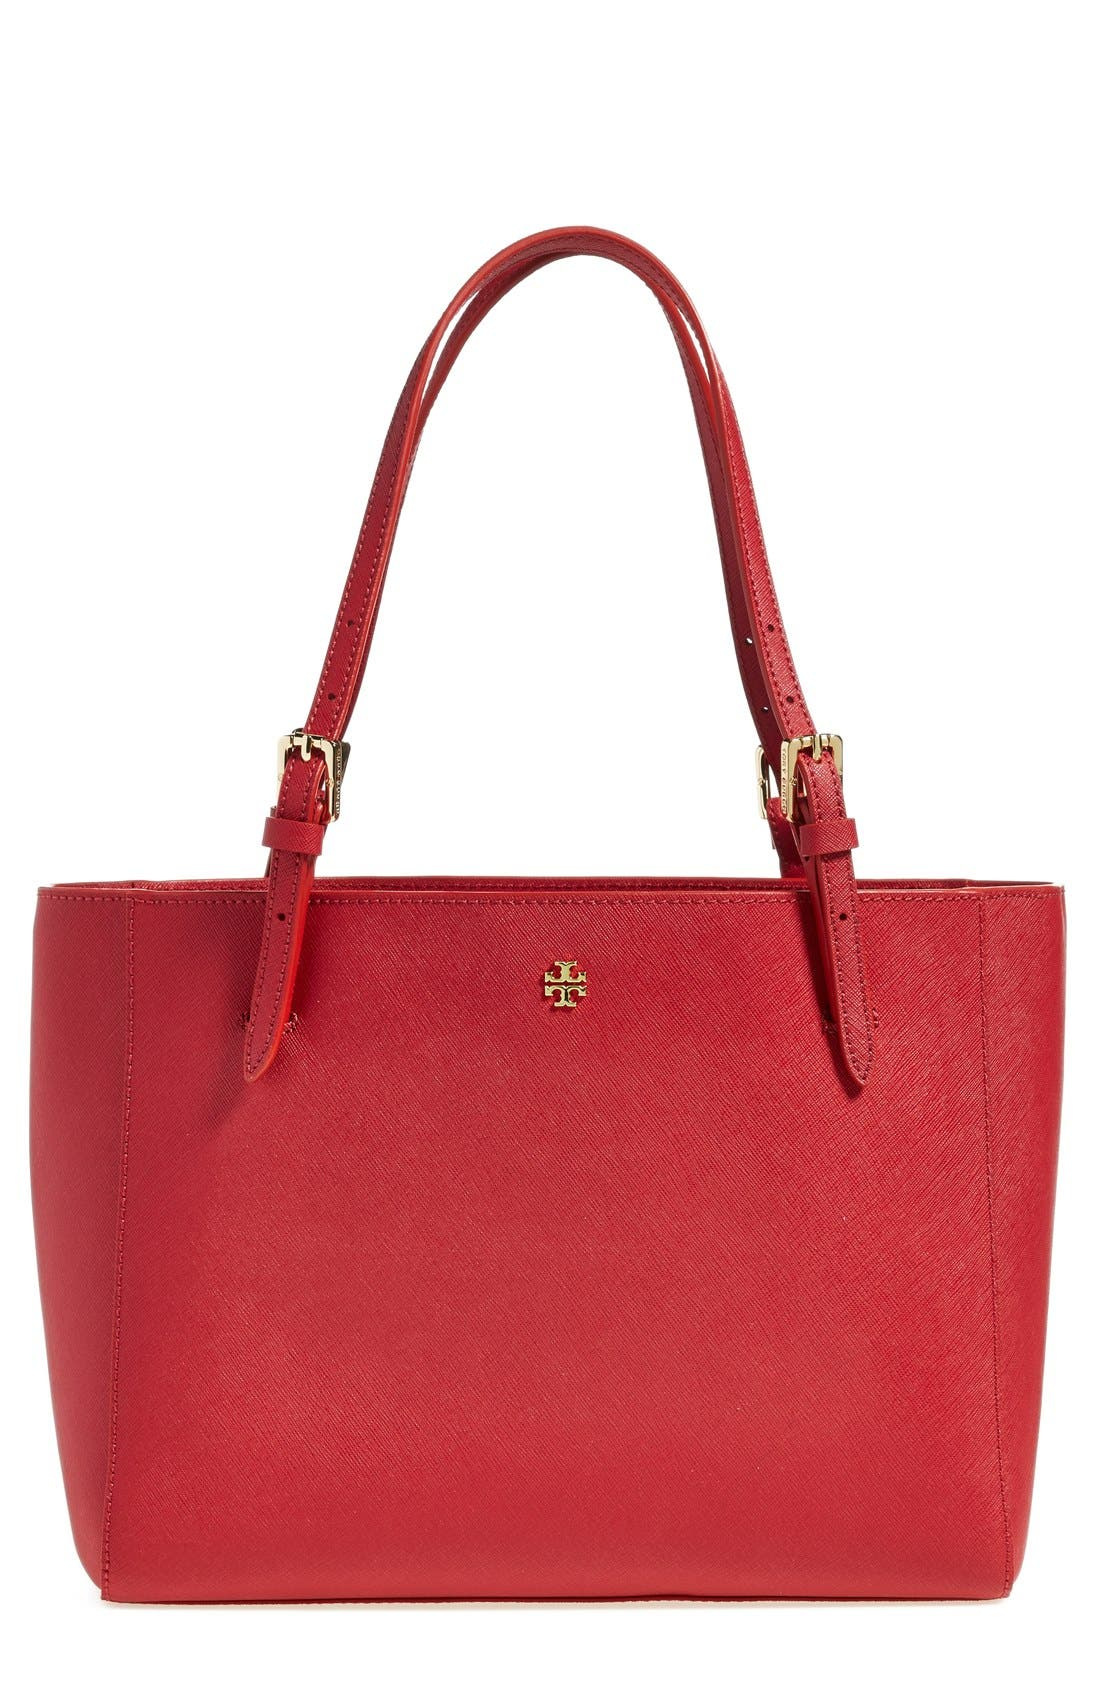 TORY BURCH Small York Saffiano Leather Buckle Tote